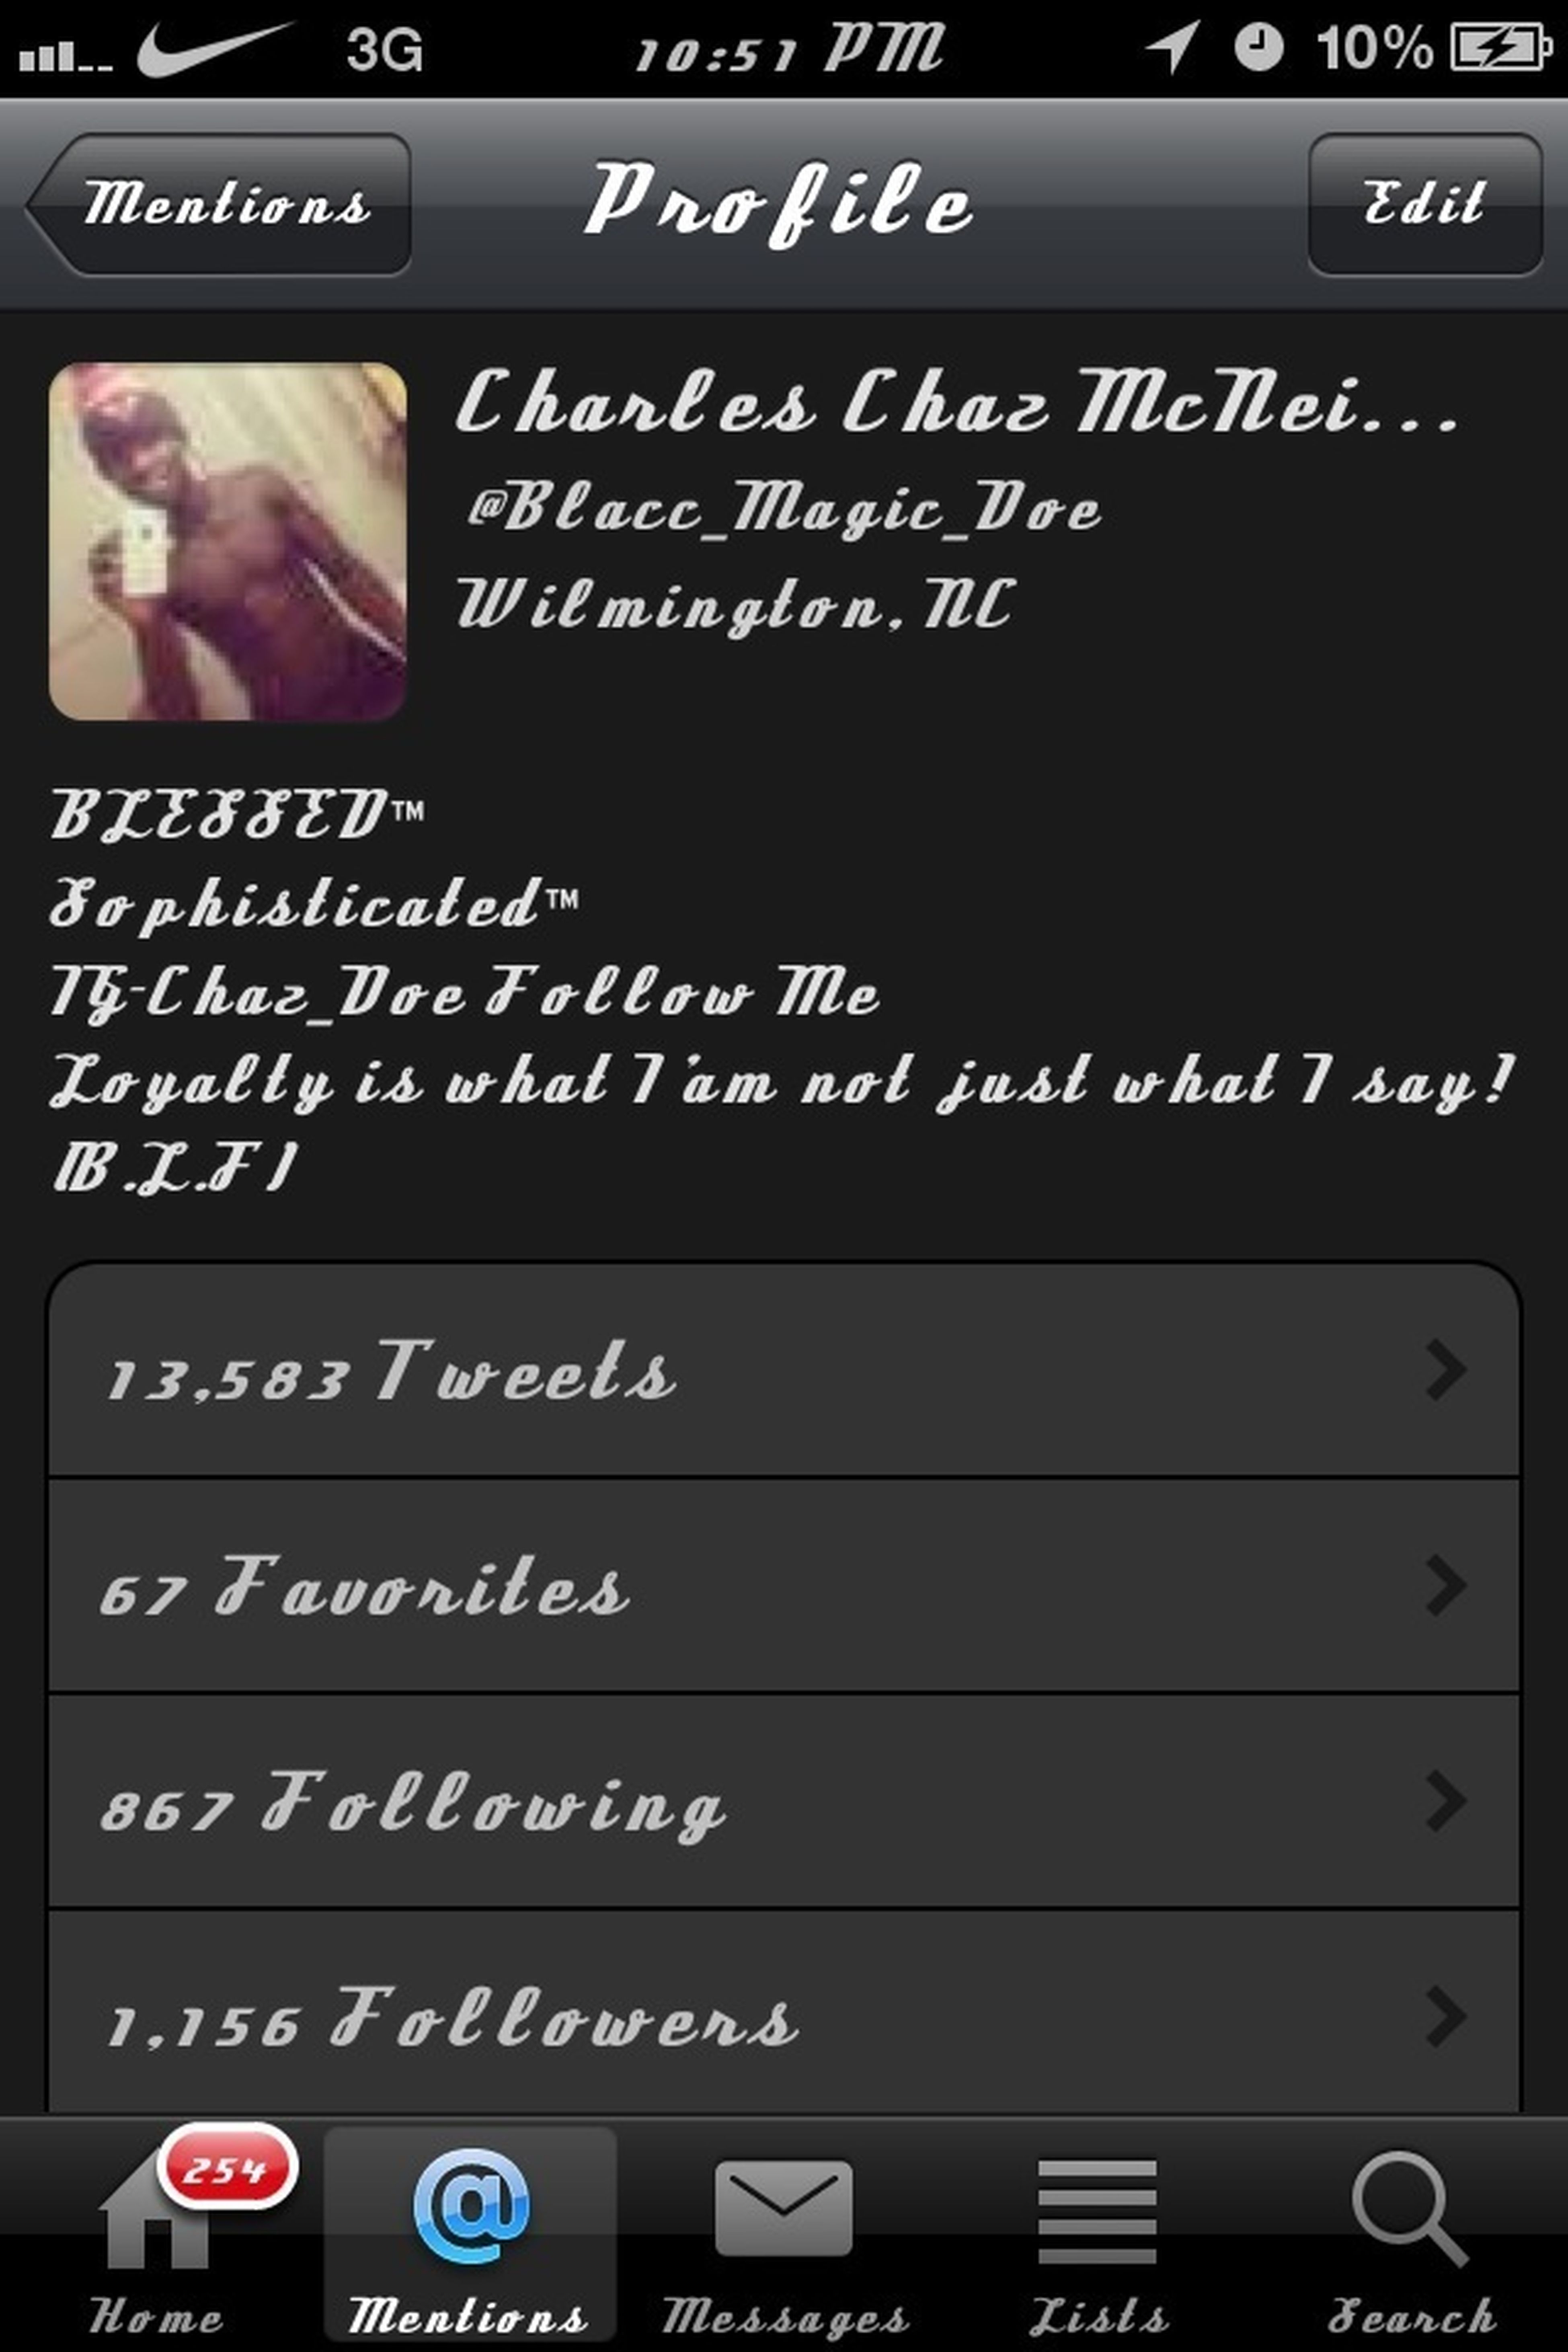 Follow Me On Twitter @blacc_magic_doe